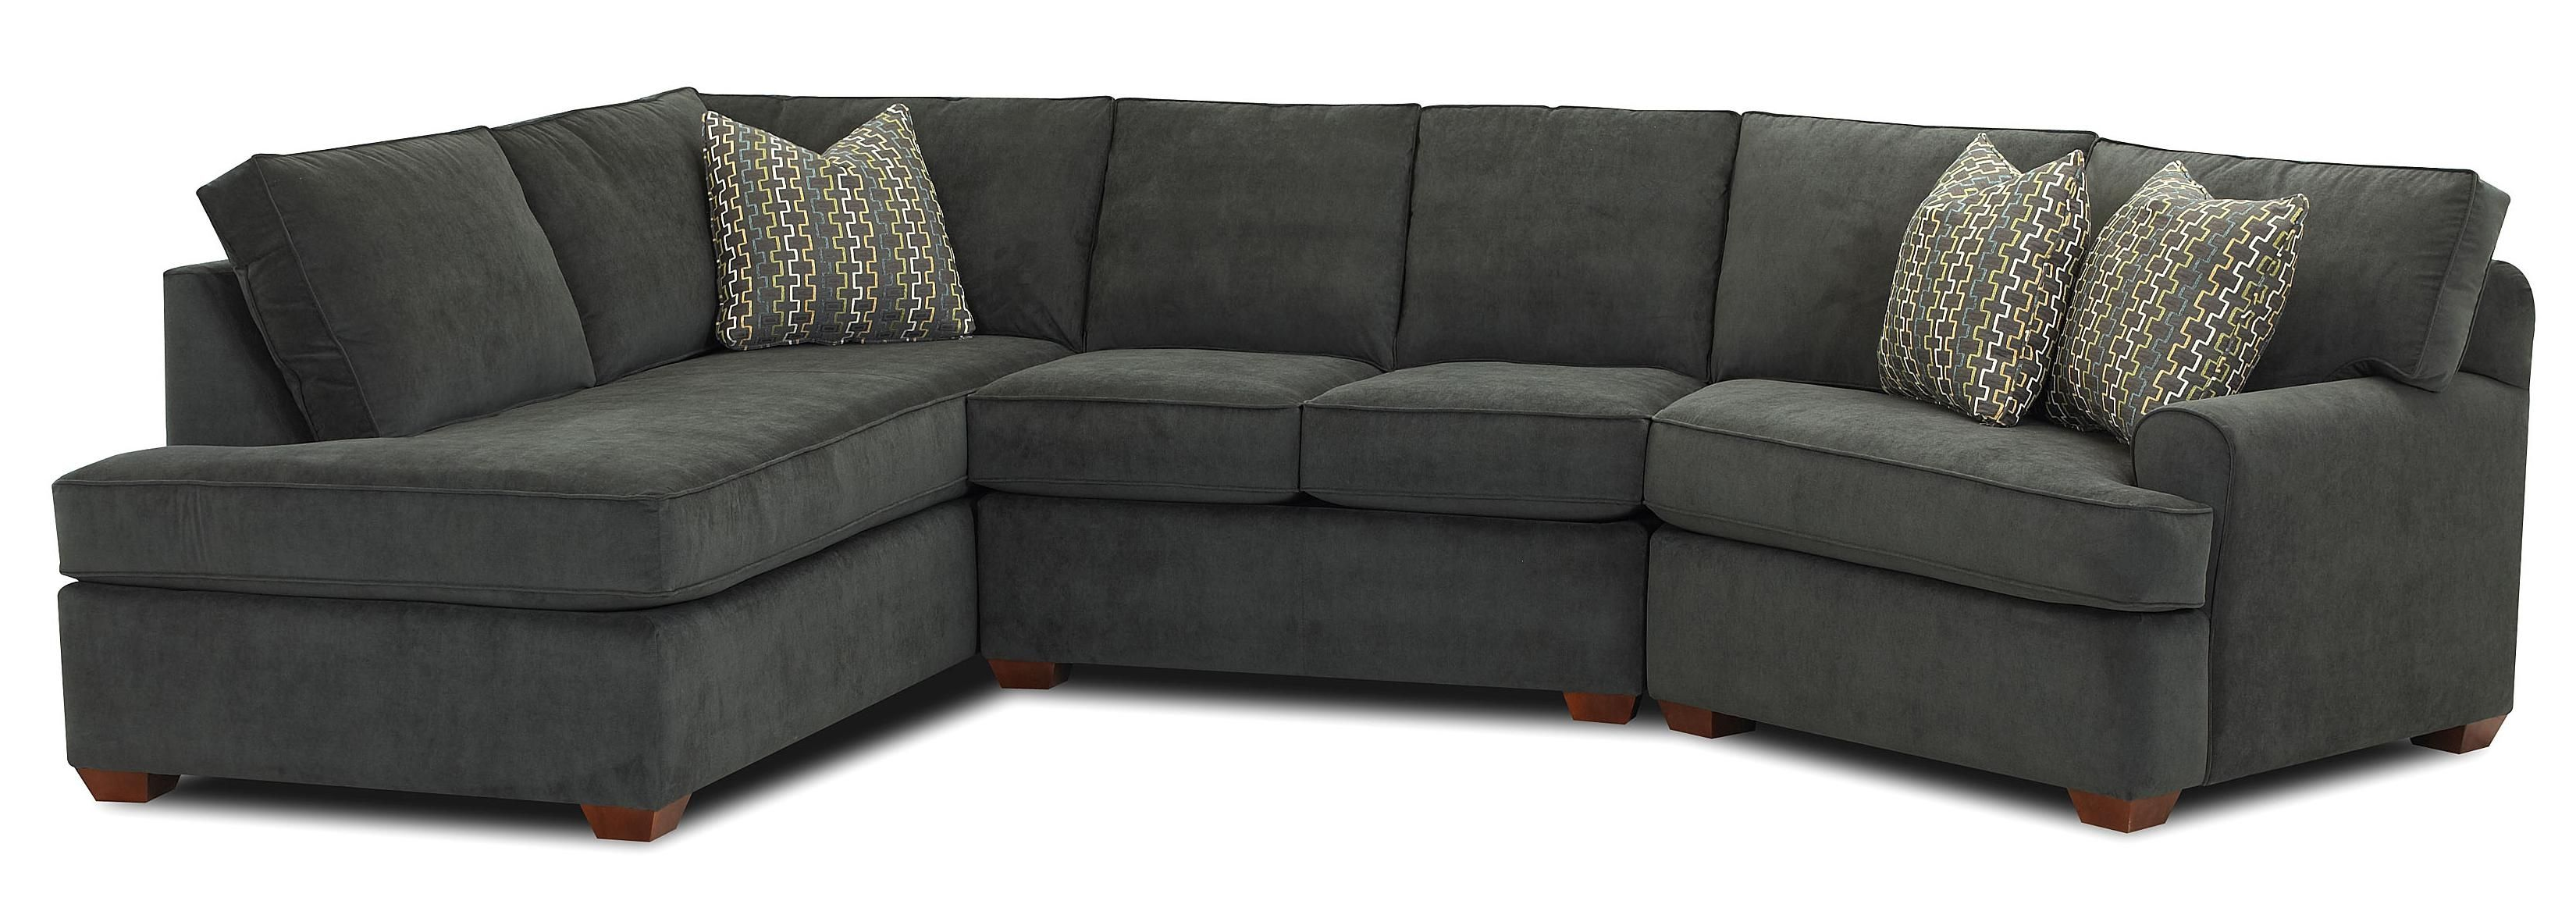 Pantego 3 Piece Sectional Sofa with LAF Chaise by Klaussner